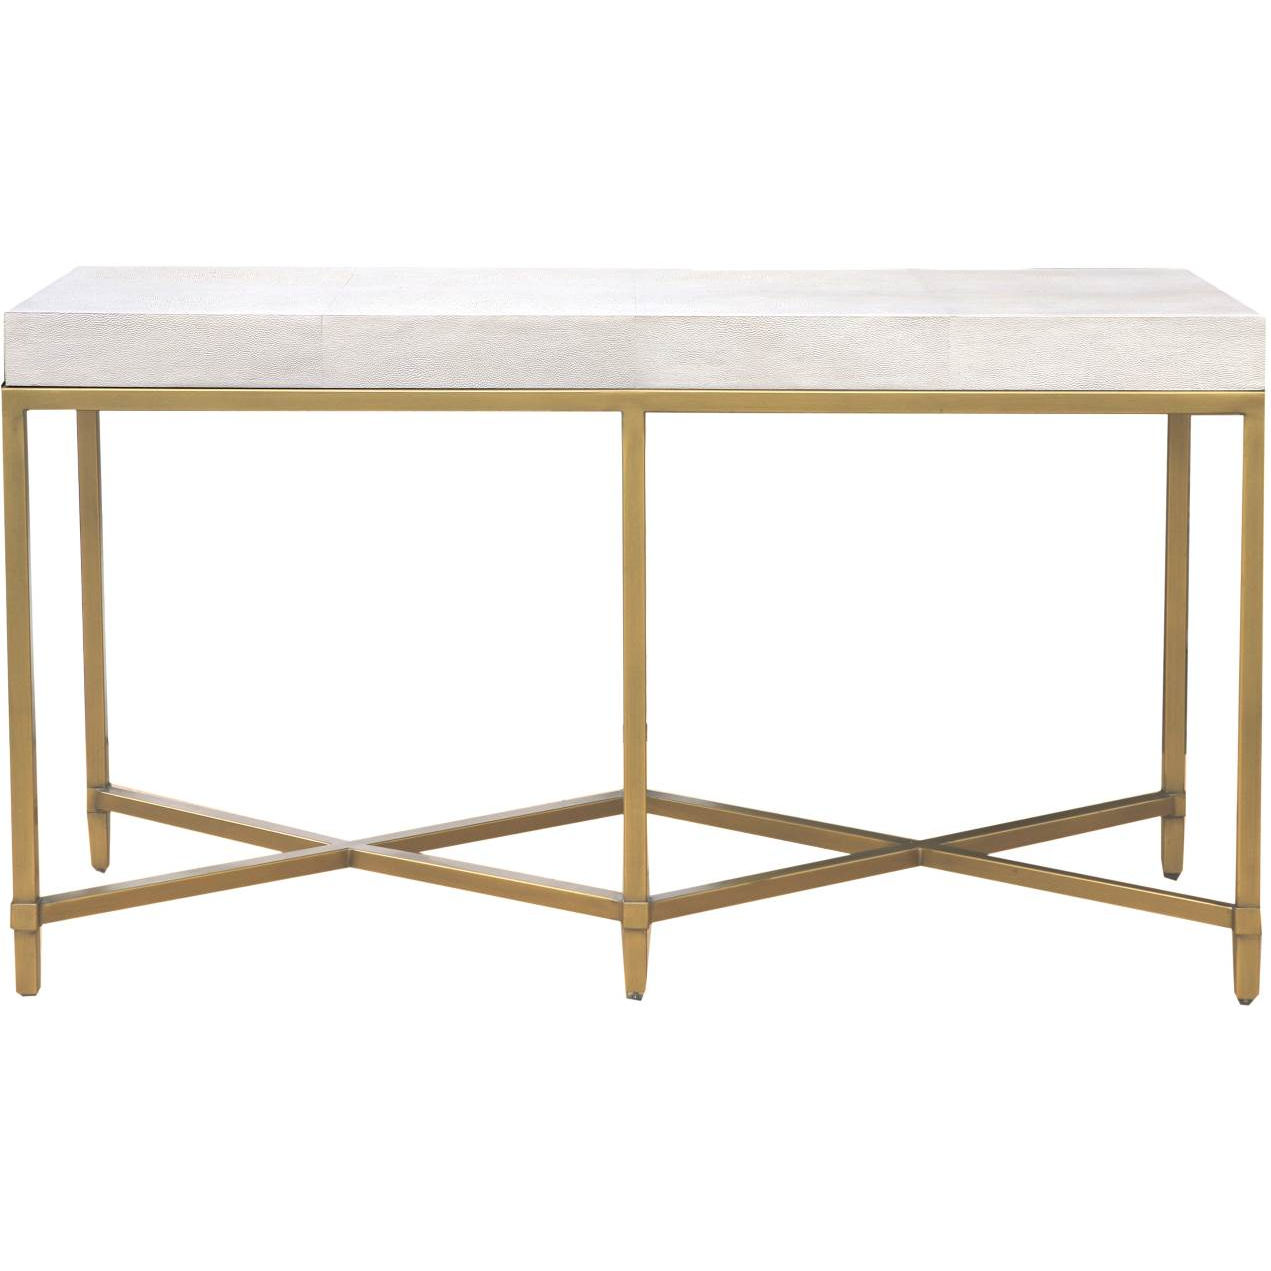 Orient express furniture 6119 wht shg gld strand console table in white faux shagreen brushed gold